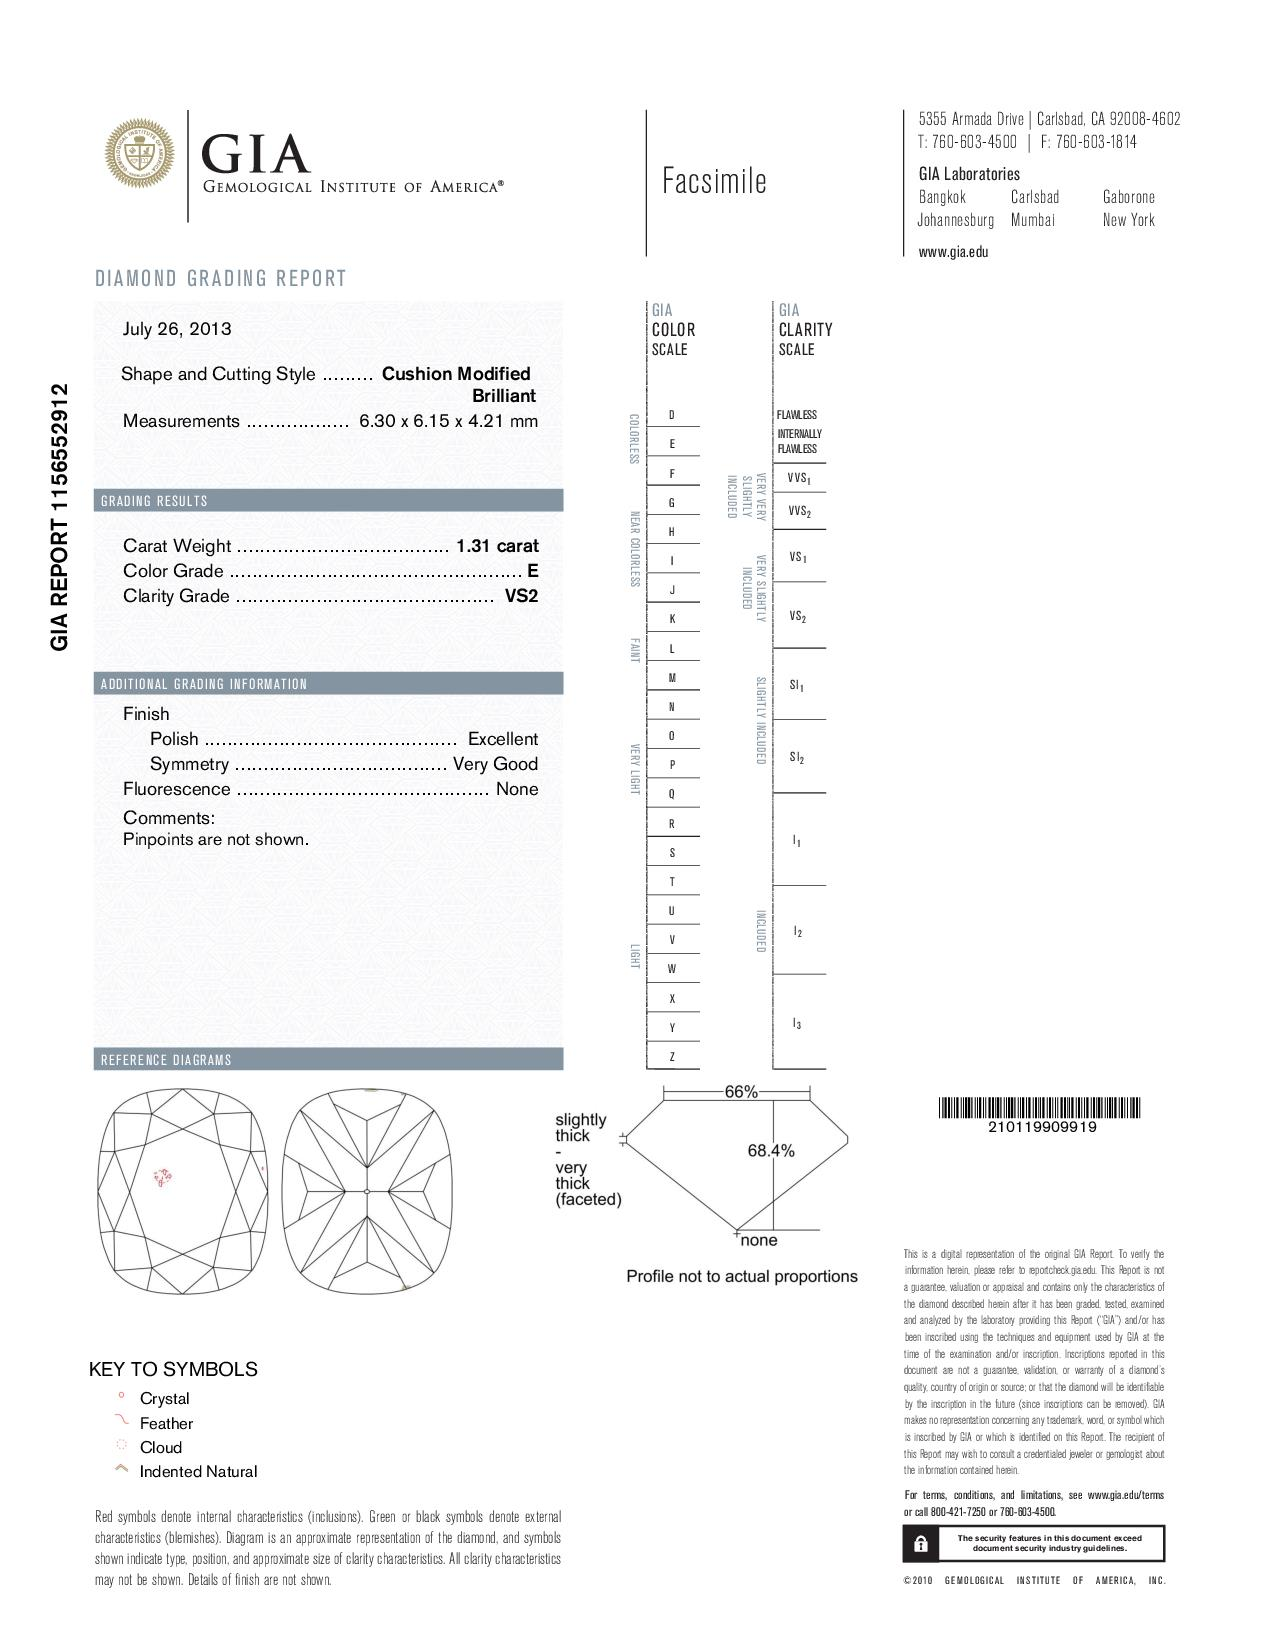 This is a 1.31 carat cushion shape, E color, VS2 clarity natural diamond accompanied by a GIA grading report.